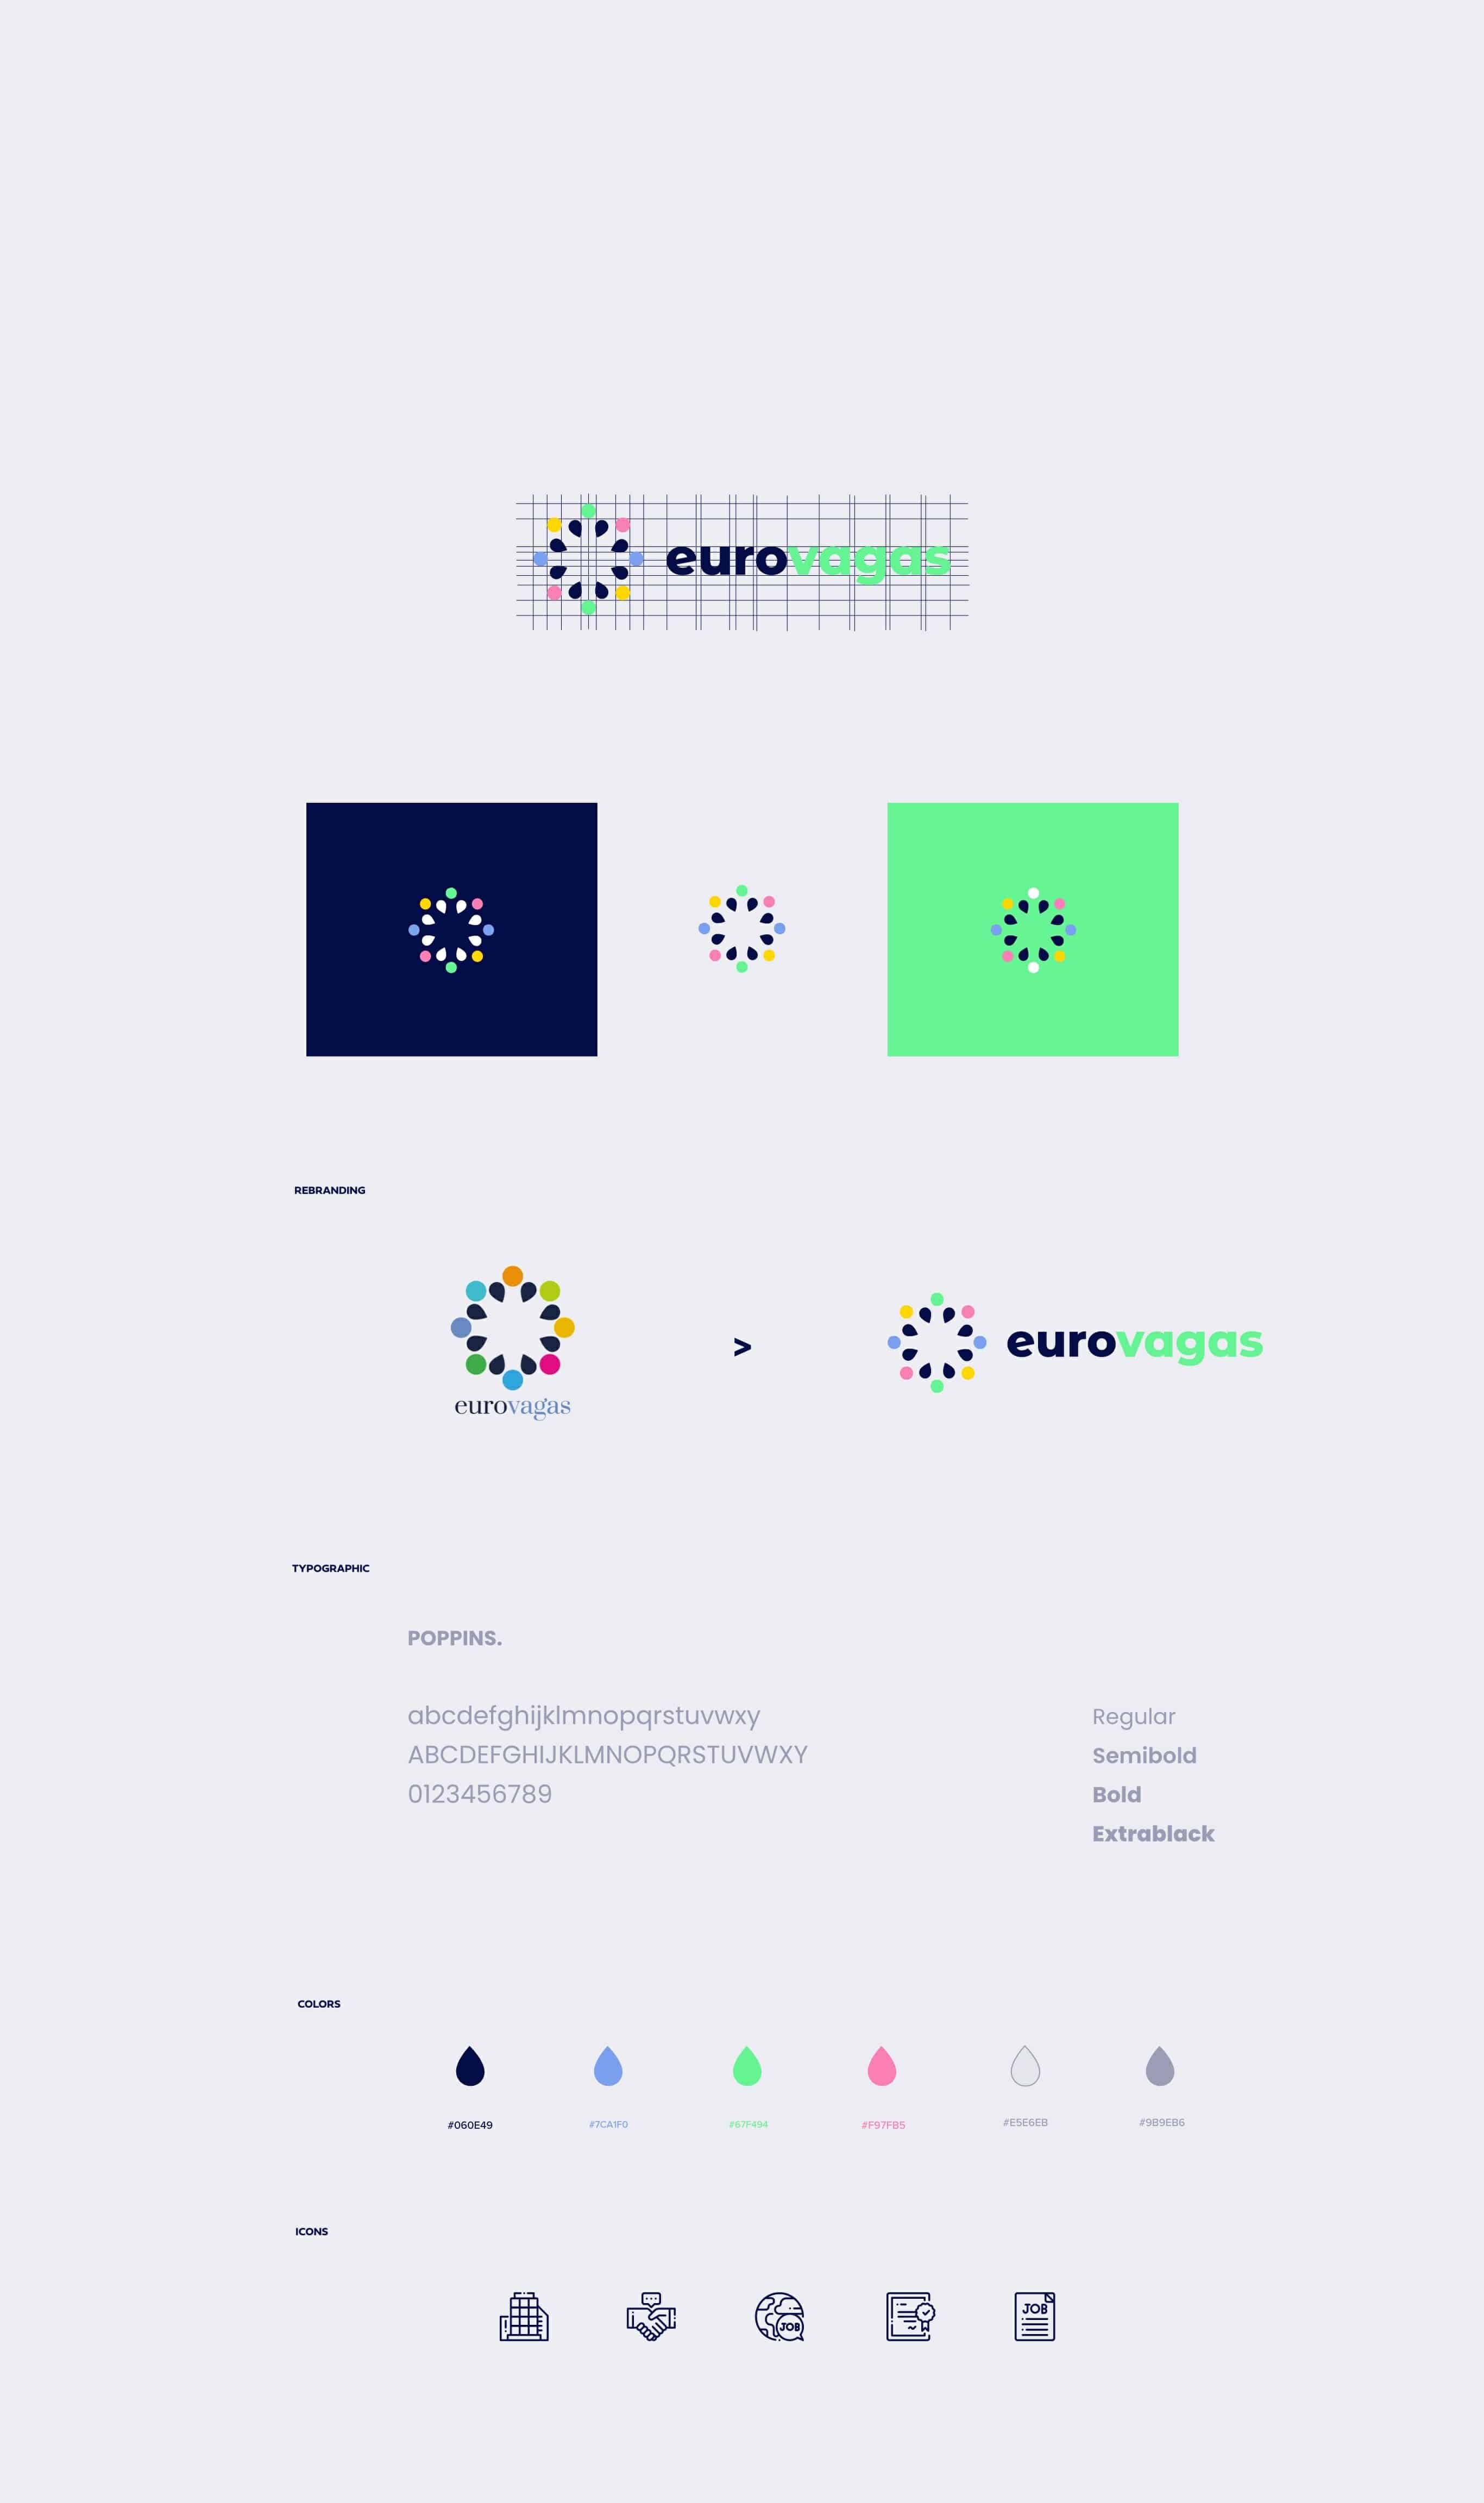 colors and fonts for eurovagas